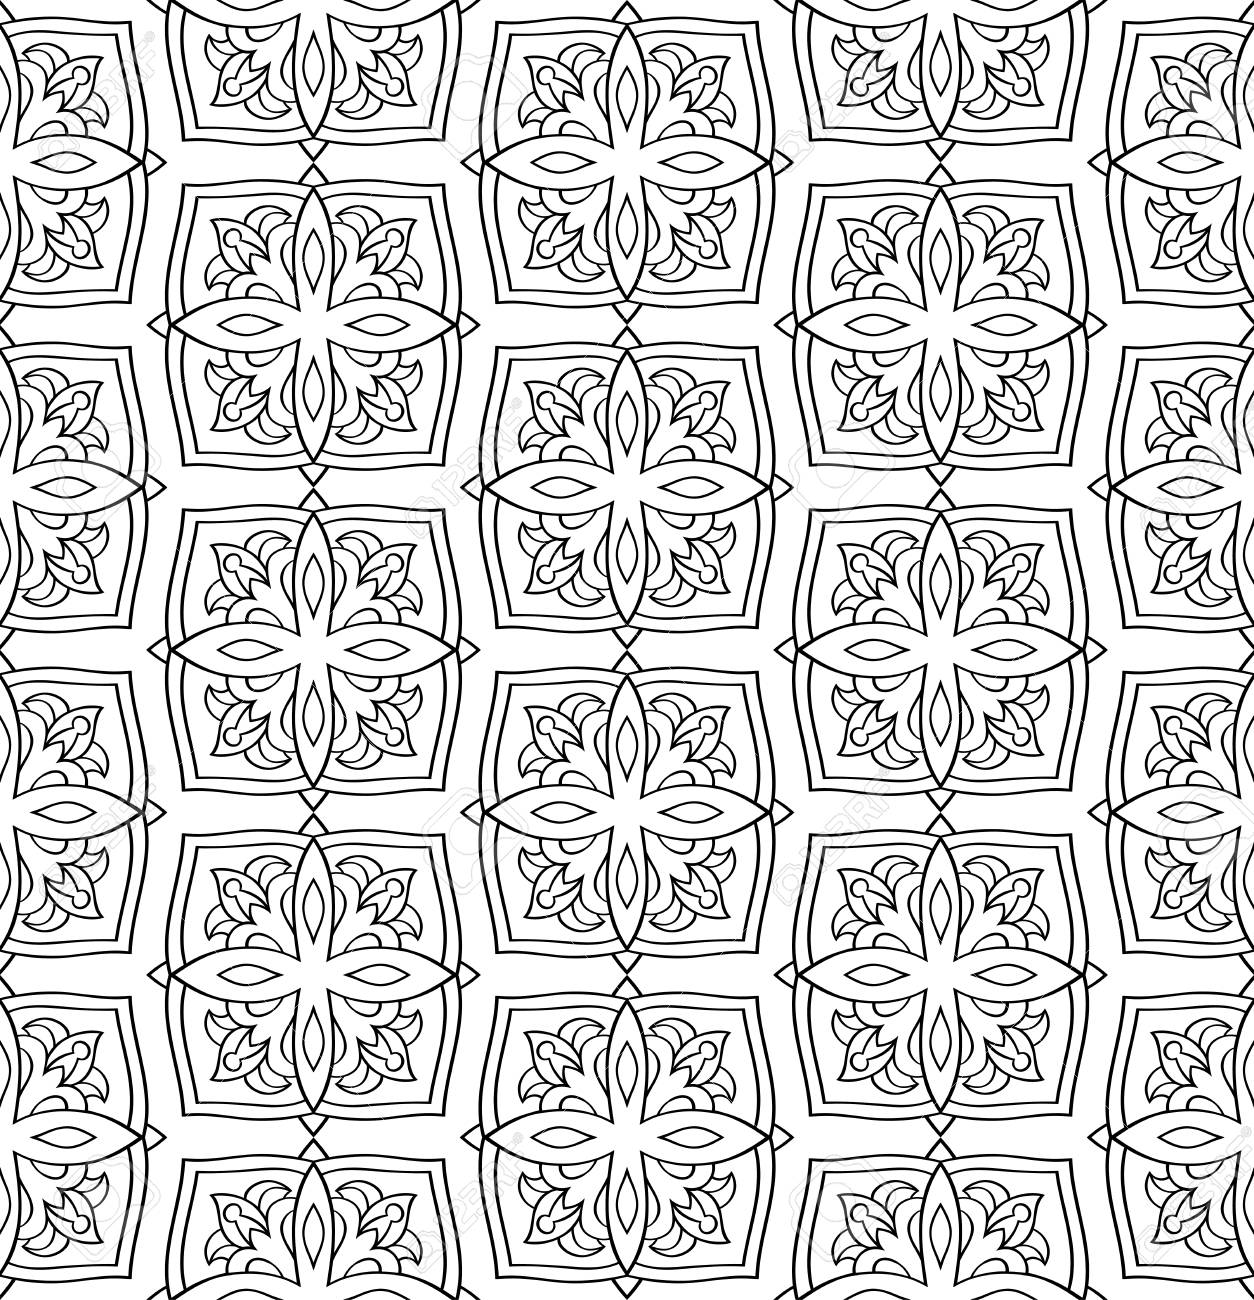 Oriental Seamless Simple Pattern Black And White Background Royalty Free Cliparts Vectors And Stock Illustration Image 65430403